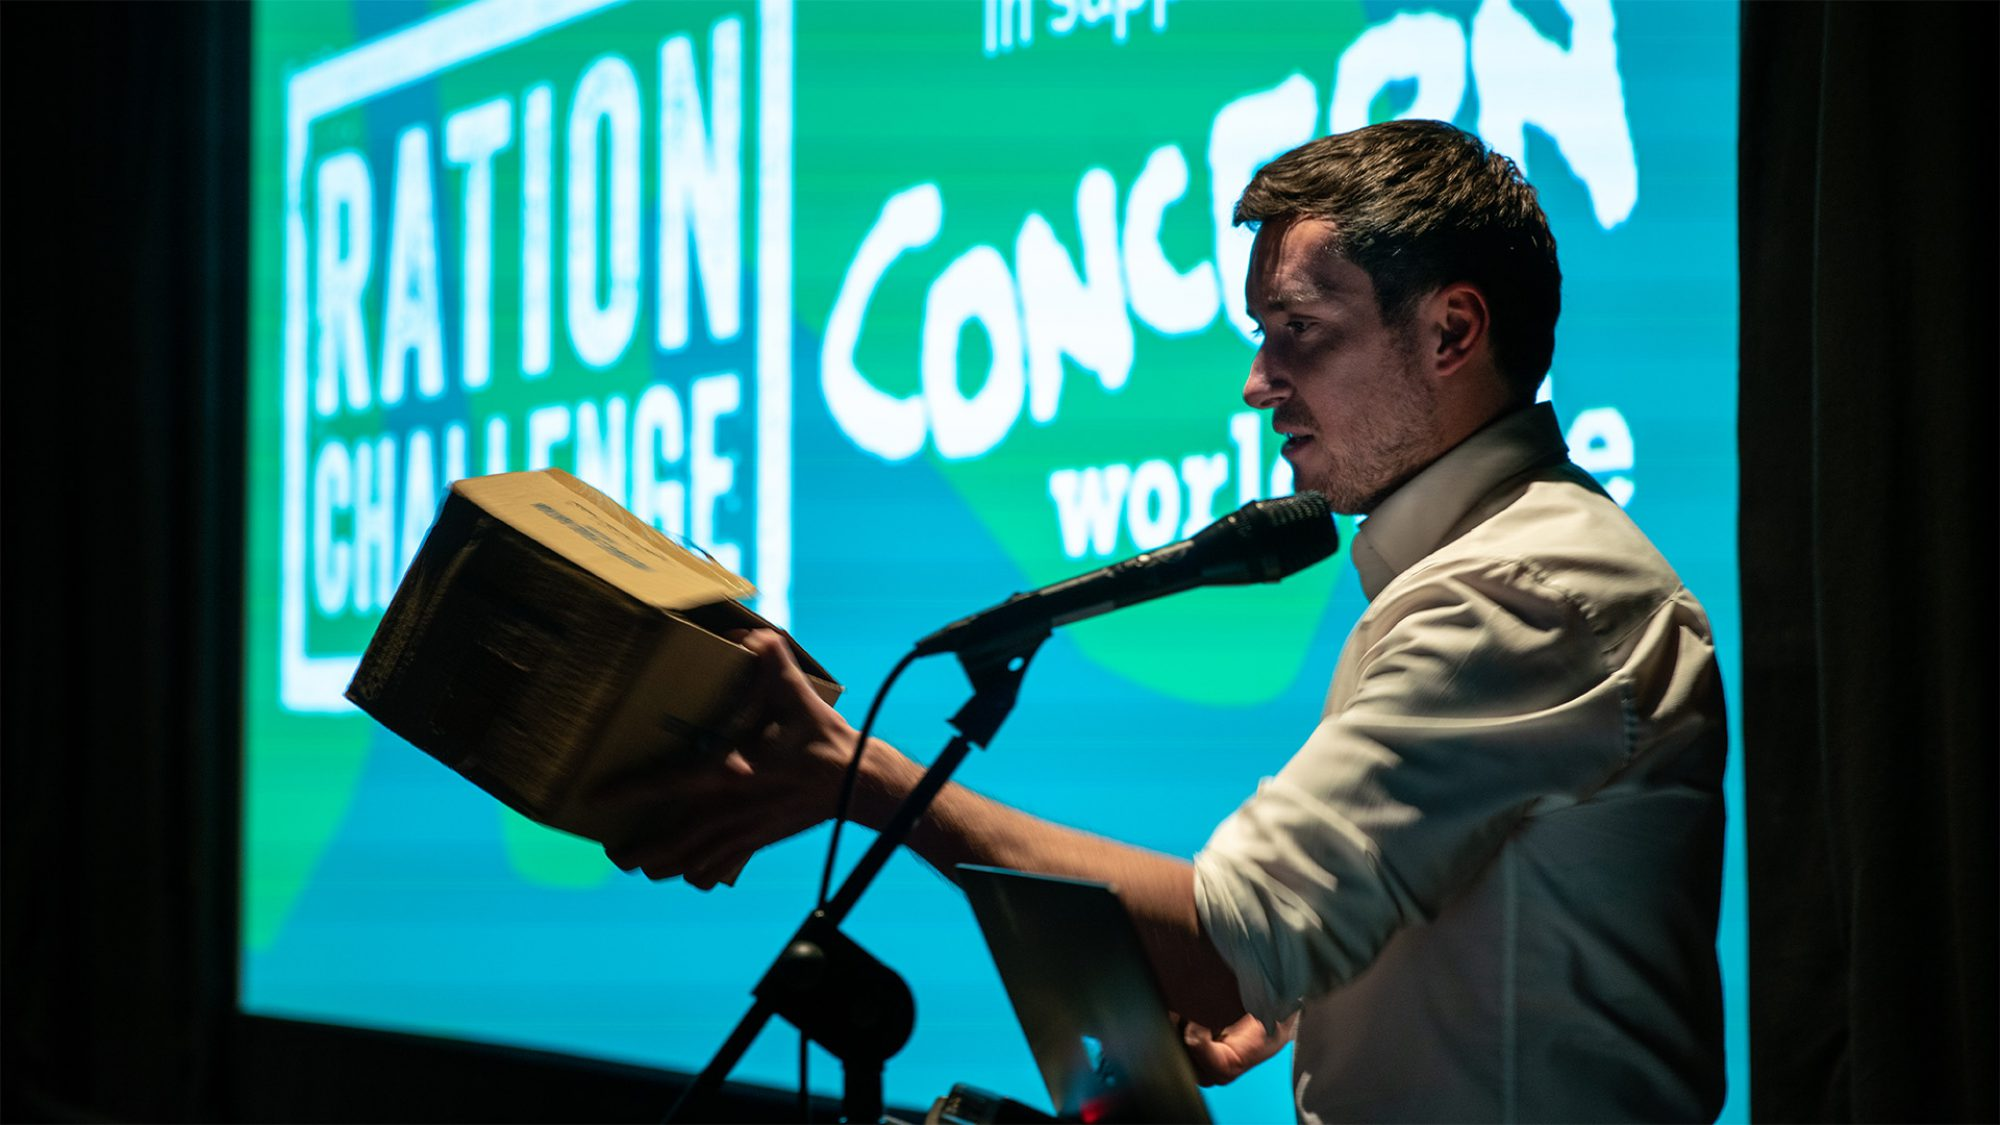 Speaker from Concern Worldwide at Relay by Raw London event